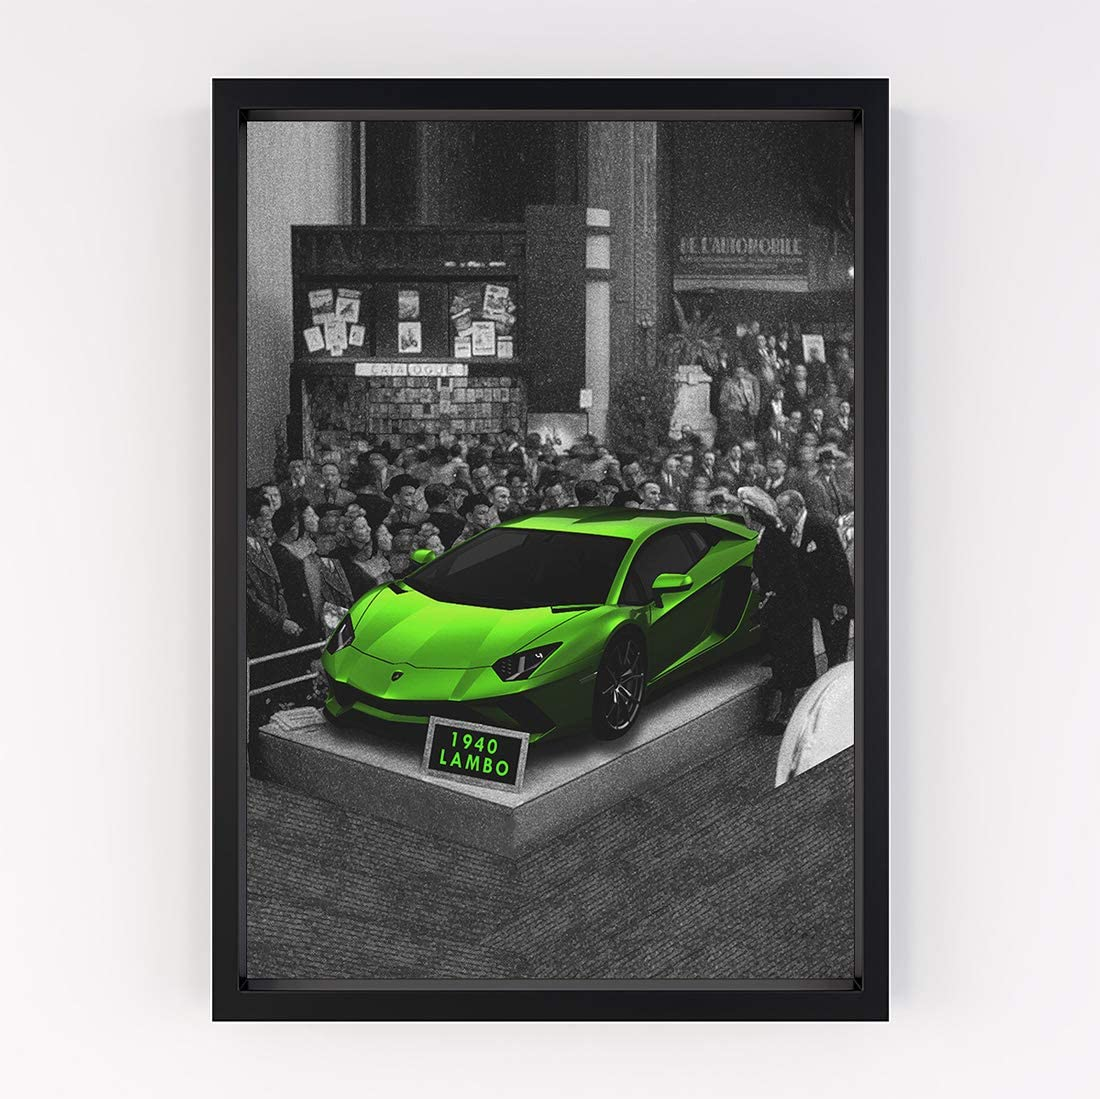 Fellipo Ricci Large Poster Artwork - 1940 Lambo Cool Wall Art Prints for Home Decor, Living Room, Office - Popular Museum Premium Quality Art On Poster Lamborghini Aventador Huracan (40